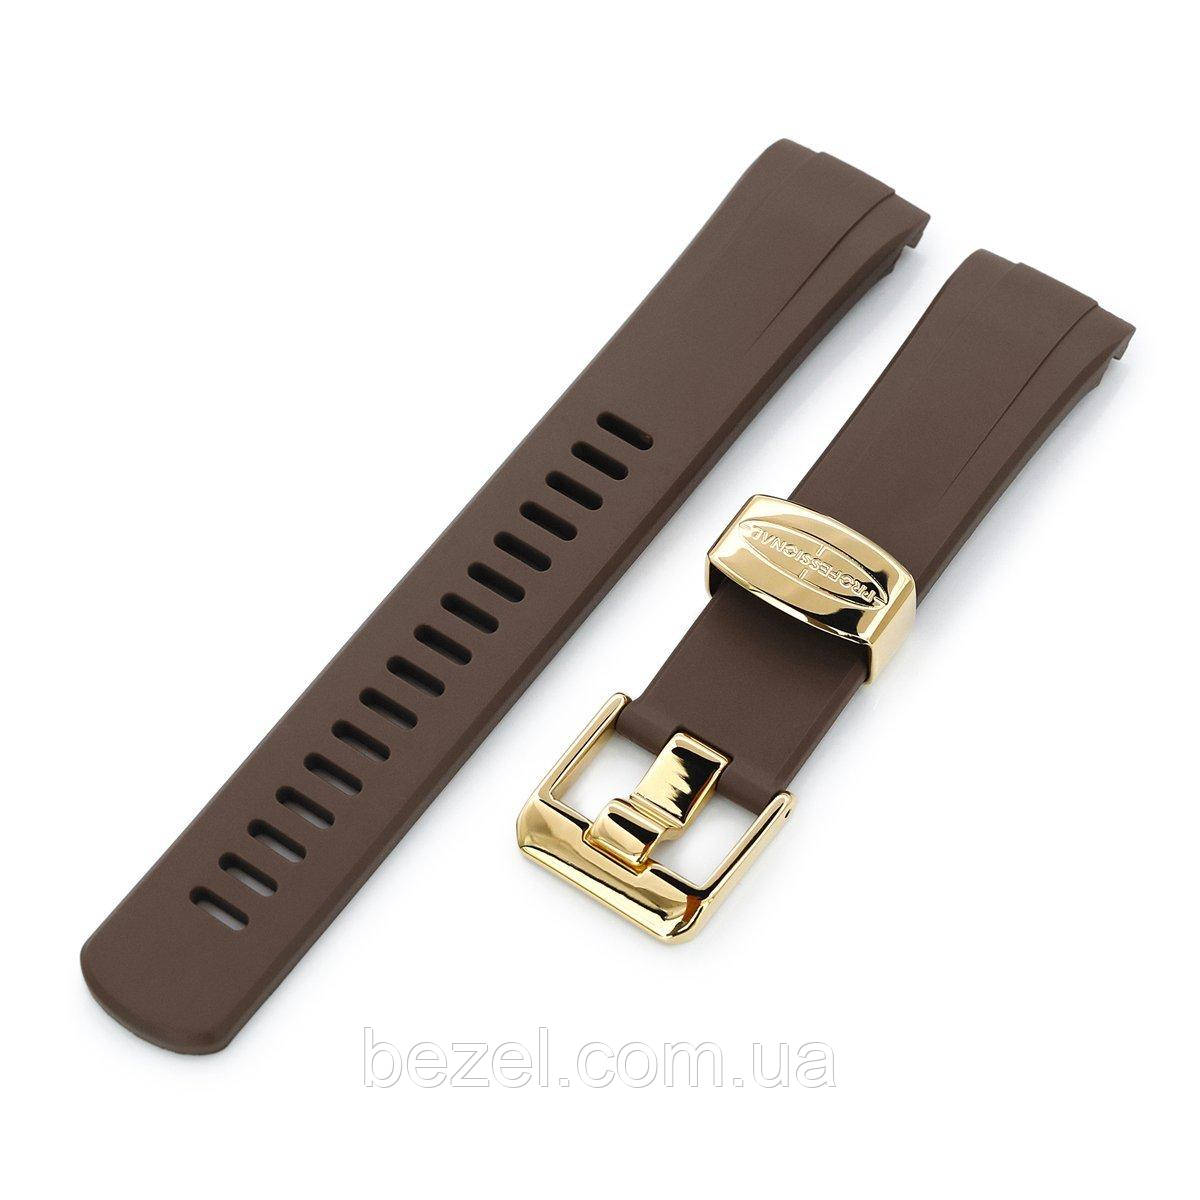 22mm Crafter Blue - Brown Rubber Curved Lug Watch Band for Seiko Gold Turtle SRPC44, IP Gold Buckle